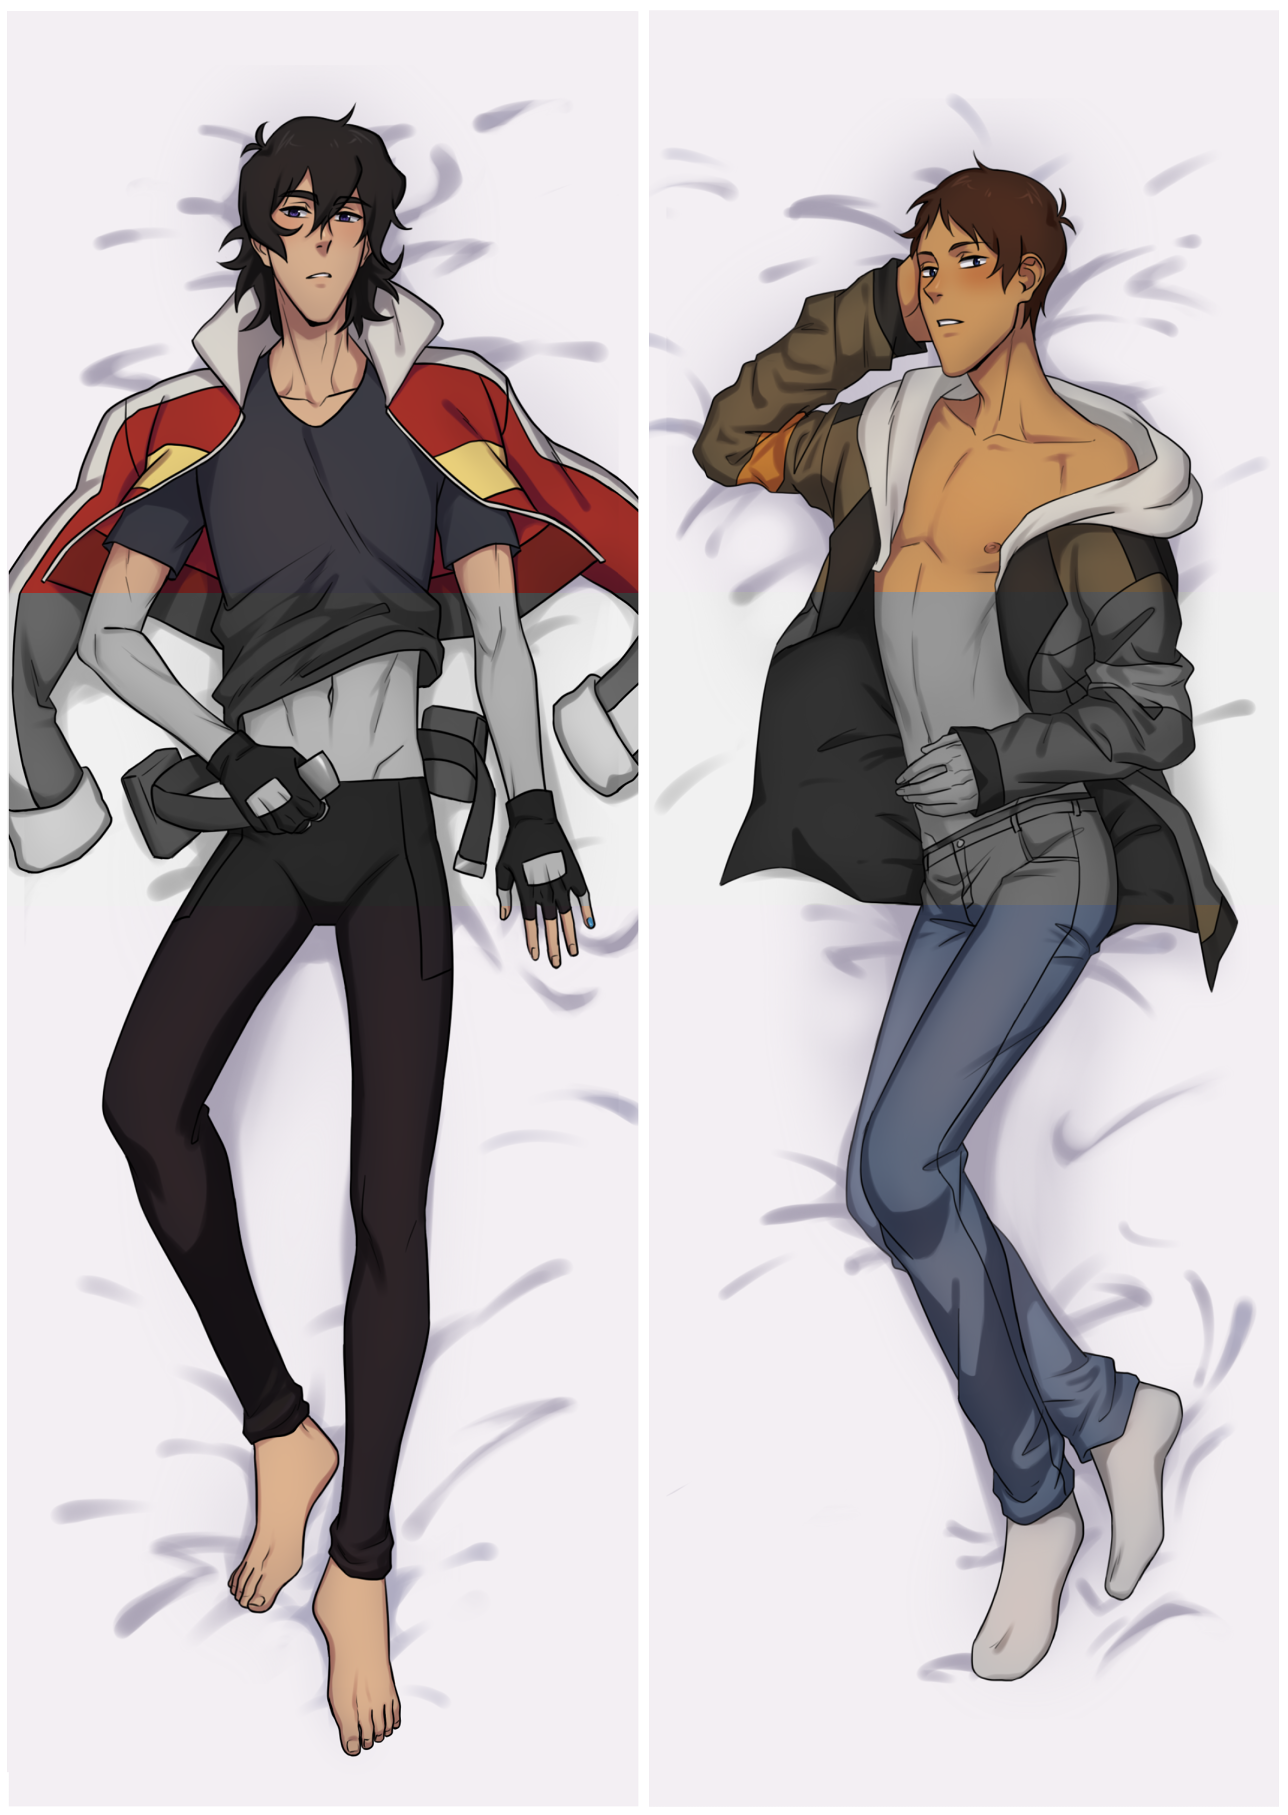 50x150cm peach skin material pillow case of Lance and Keith  *DOES